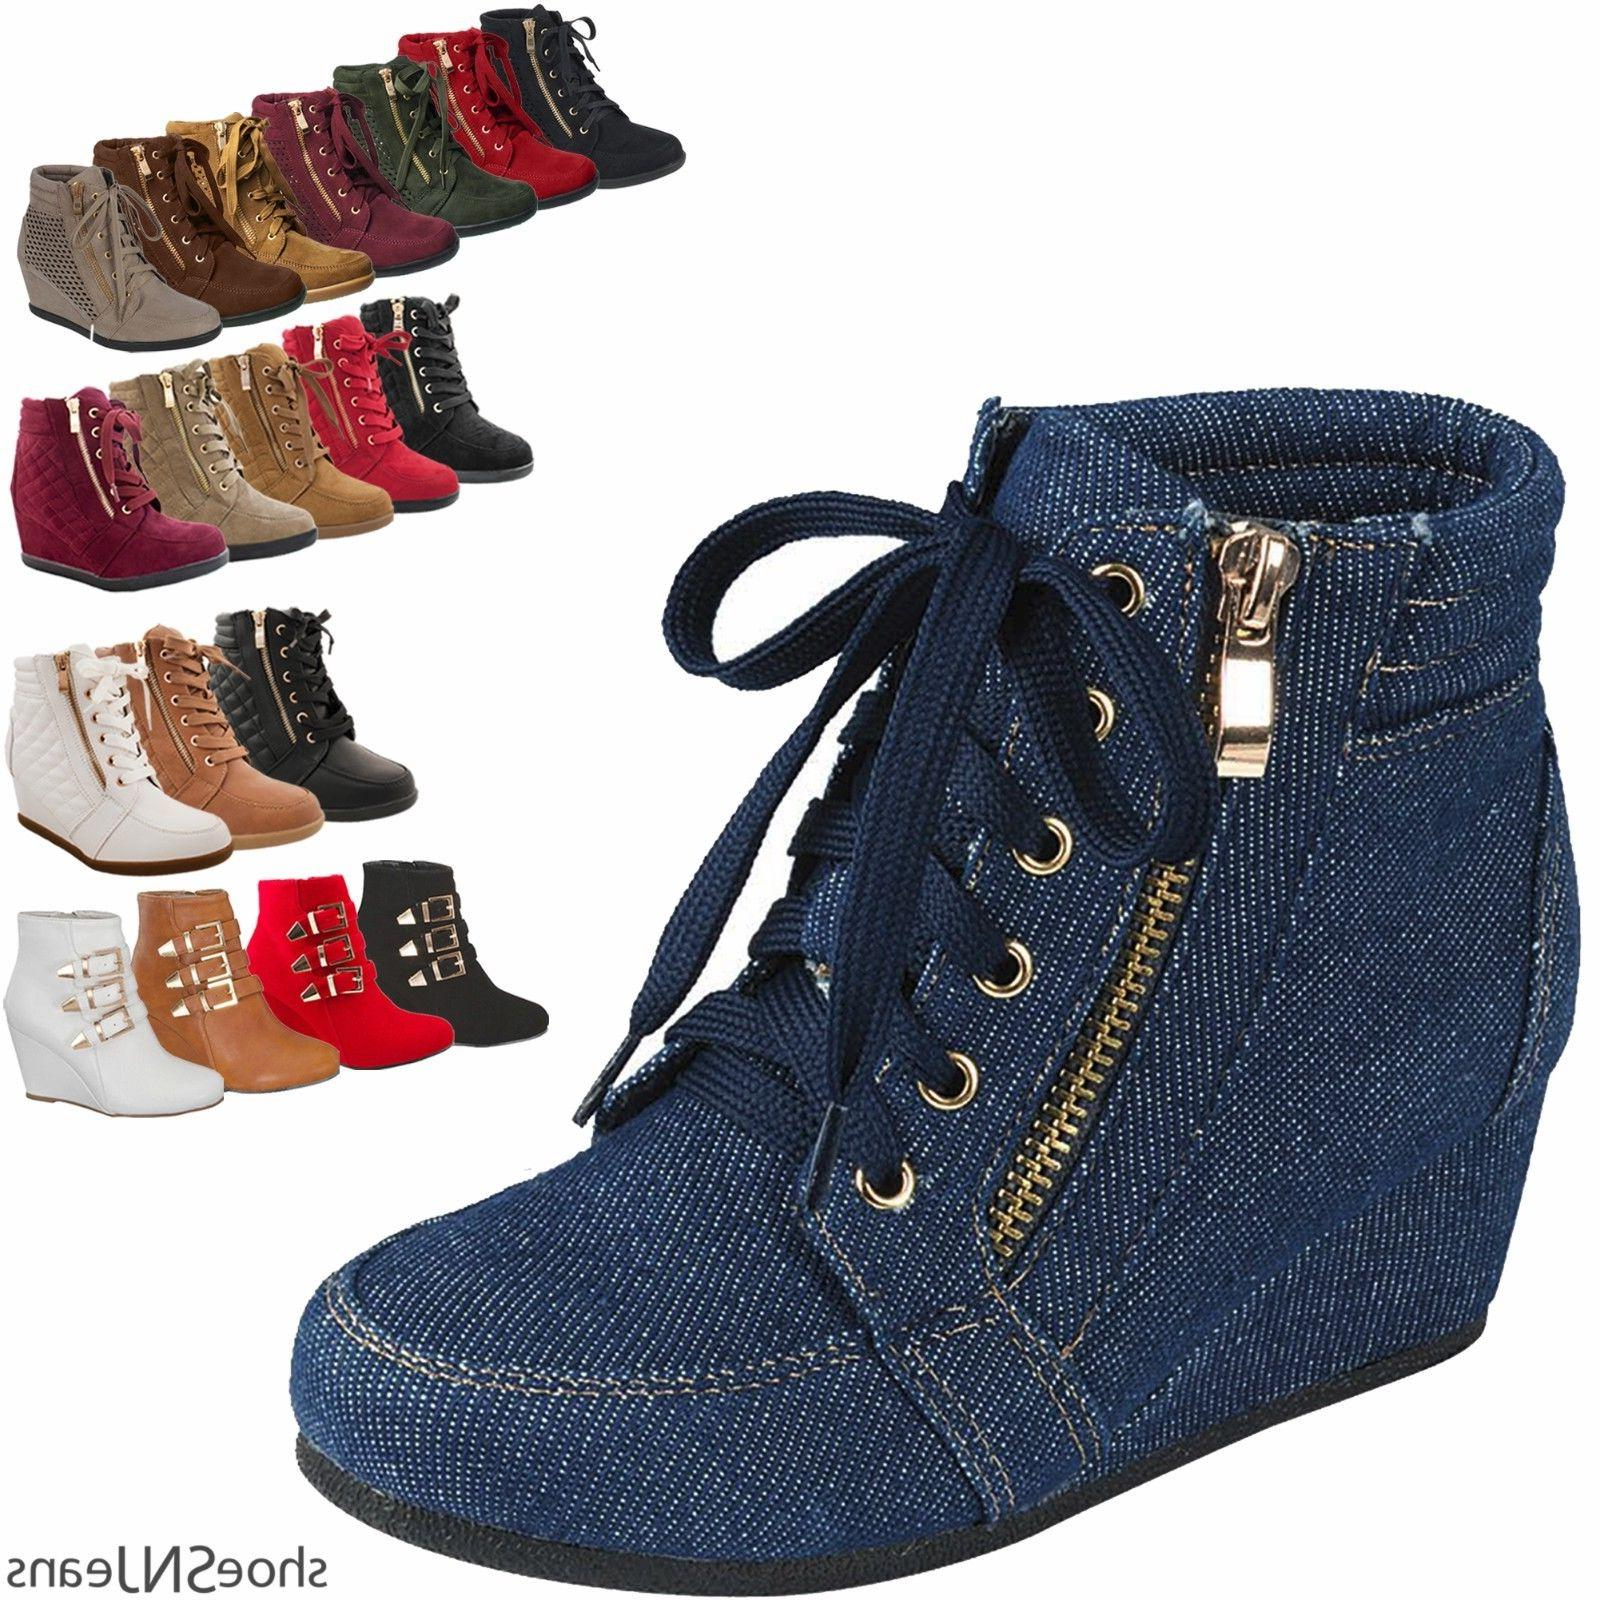 Women High Top Wedge Heel Sneakers Platform Lace Up Tennis S